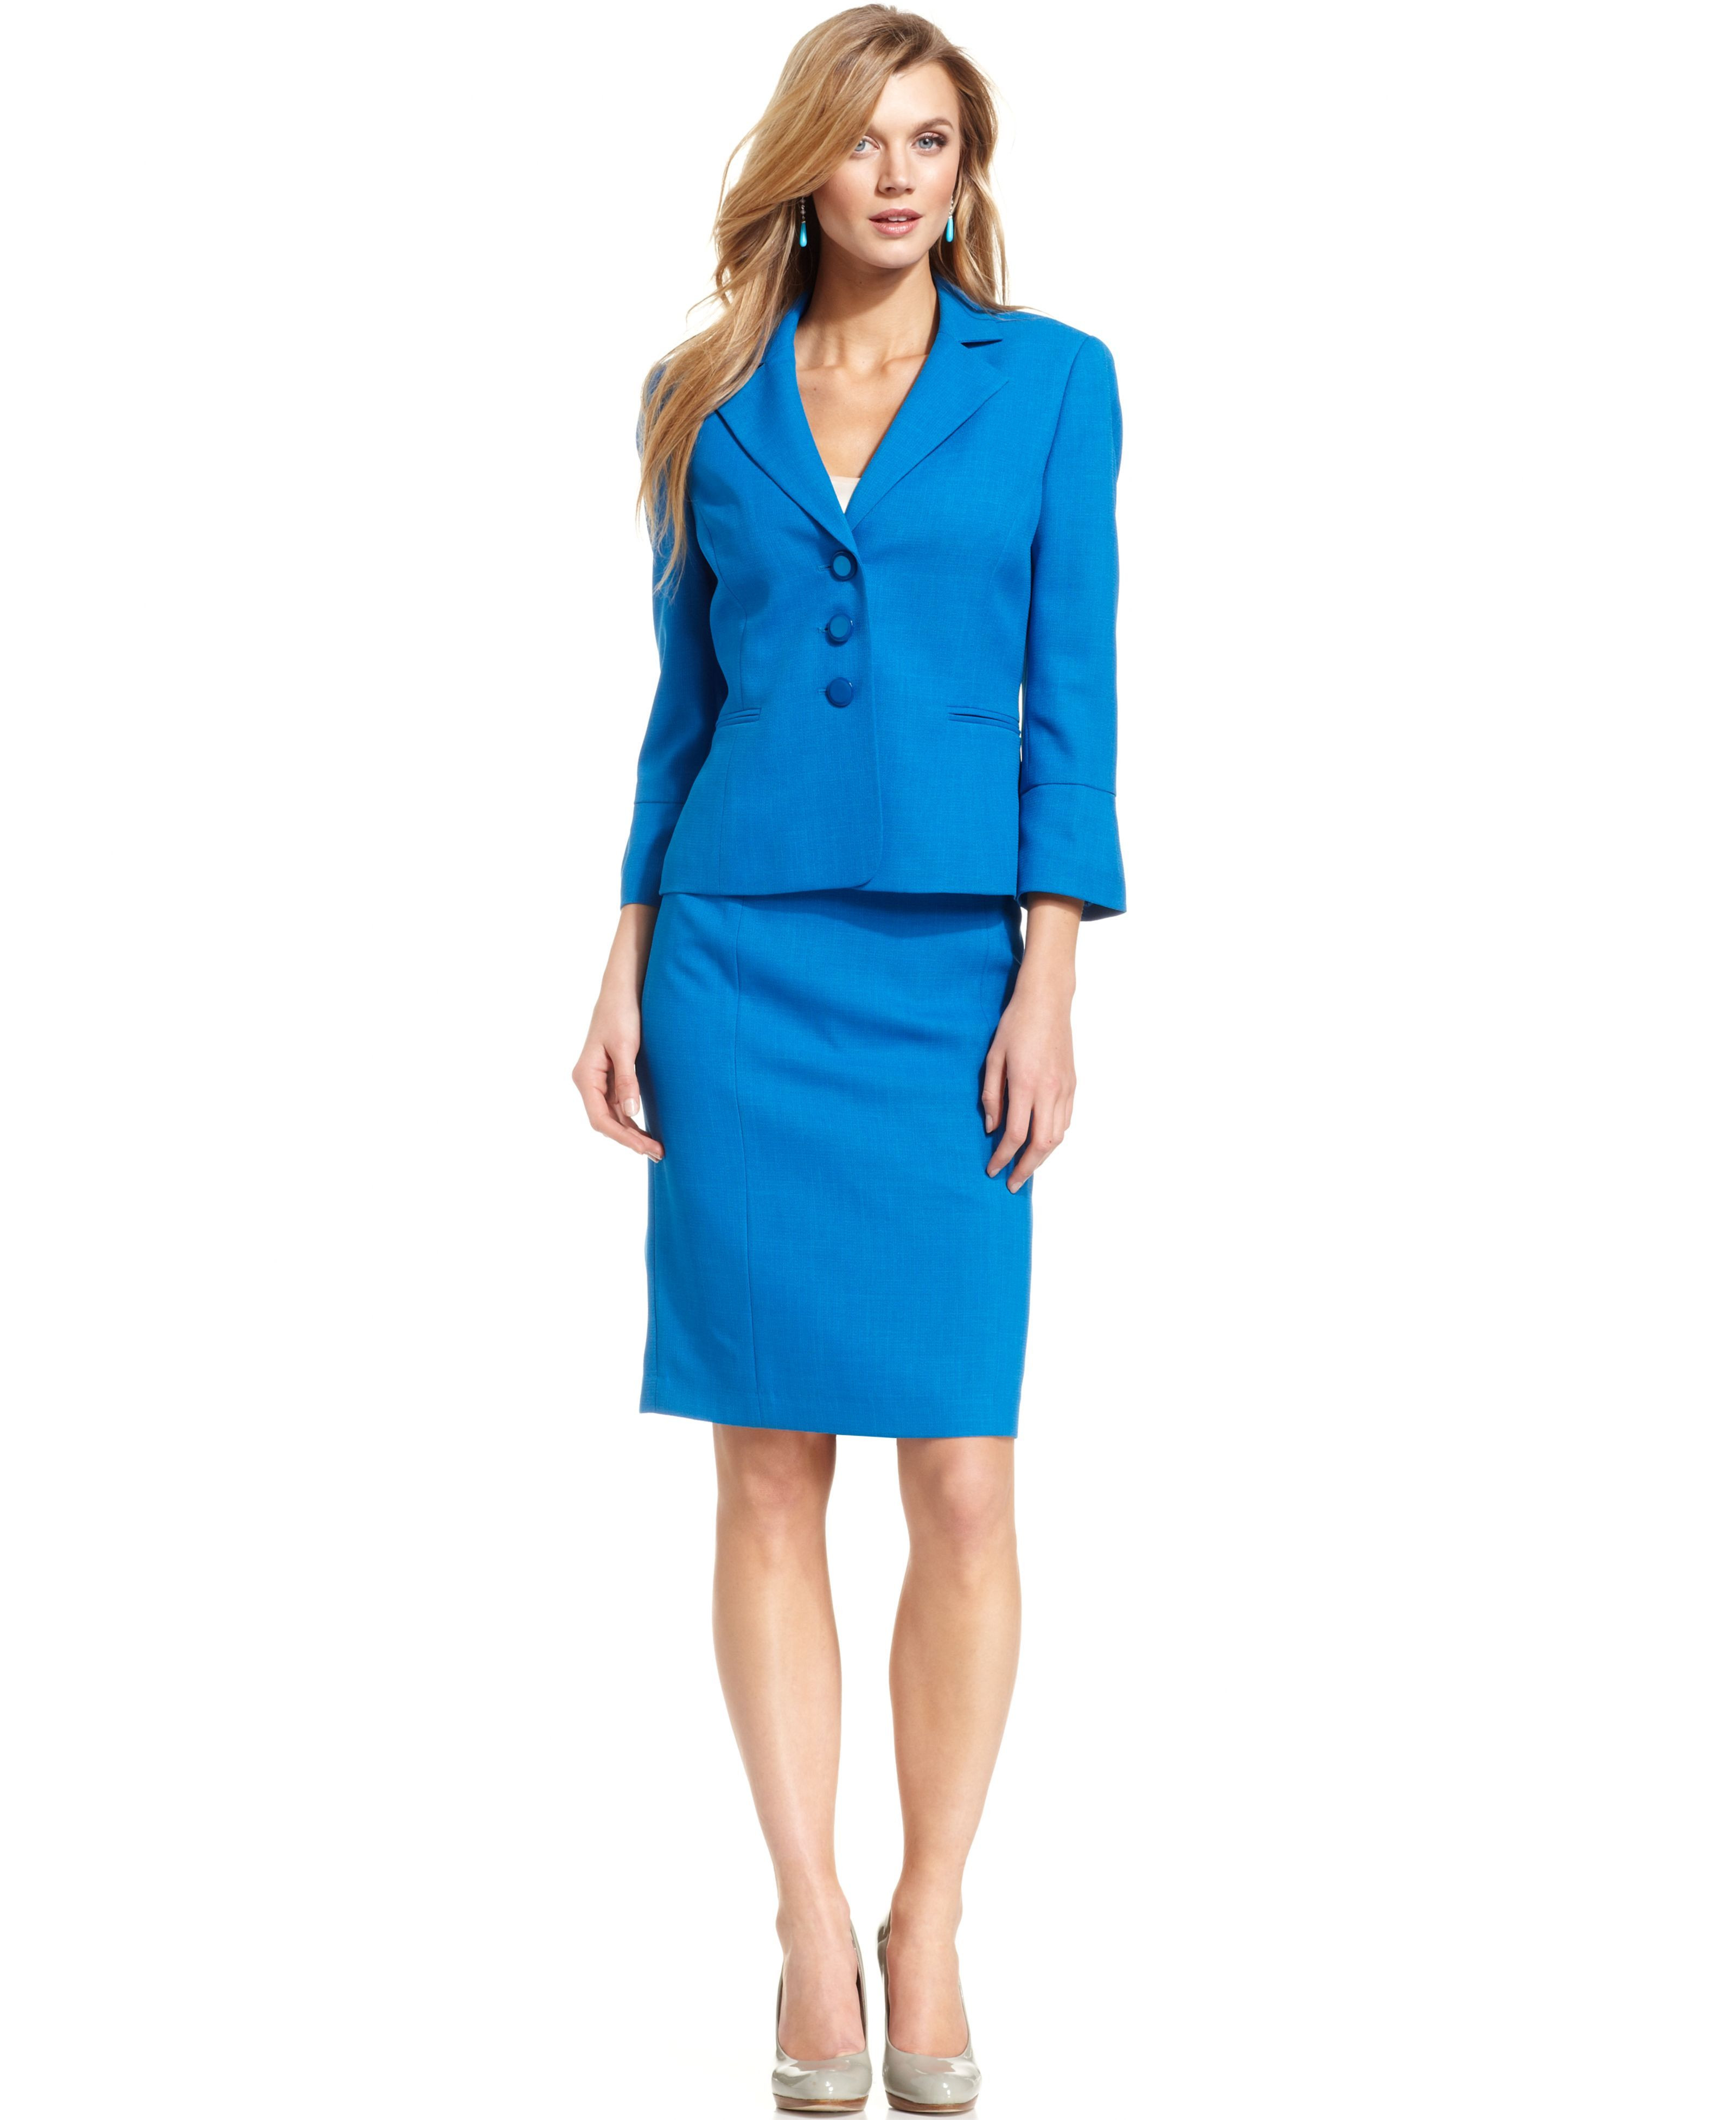 Evan Picone Three Button Jacket Skirt Suit Macys Jayne Moore Macys